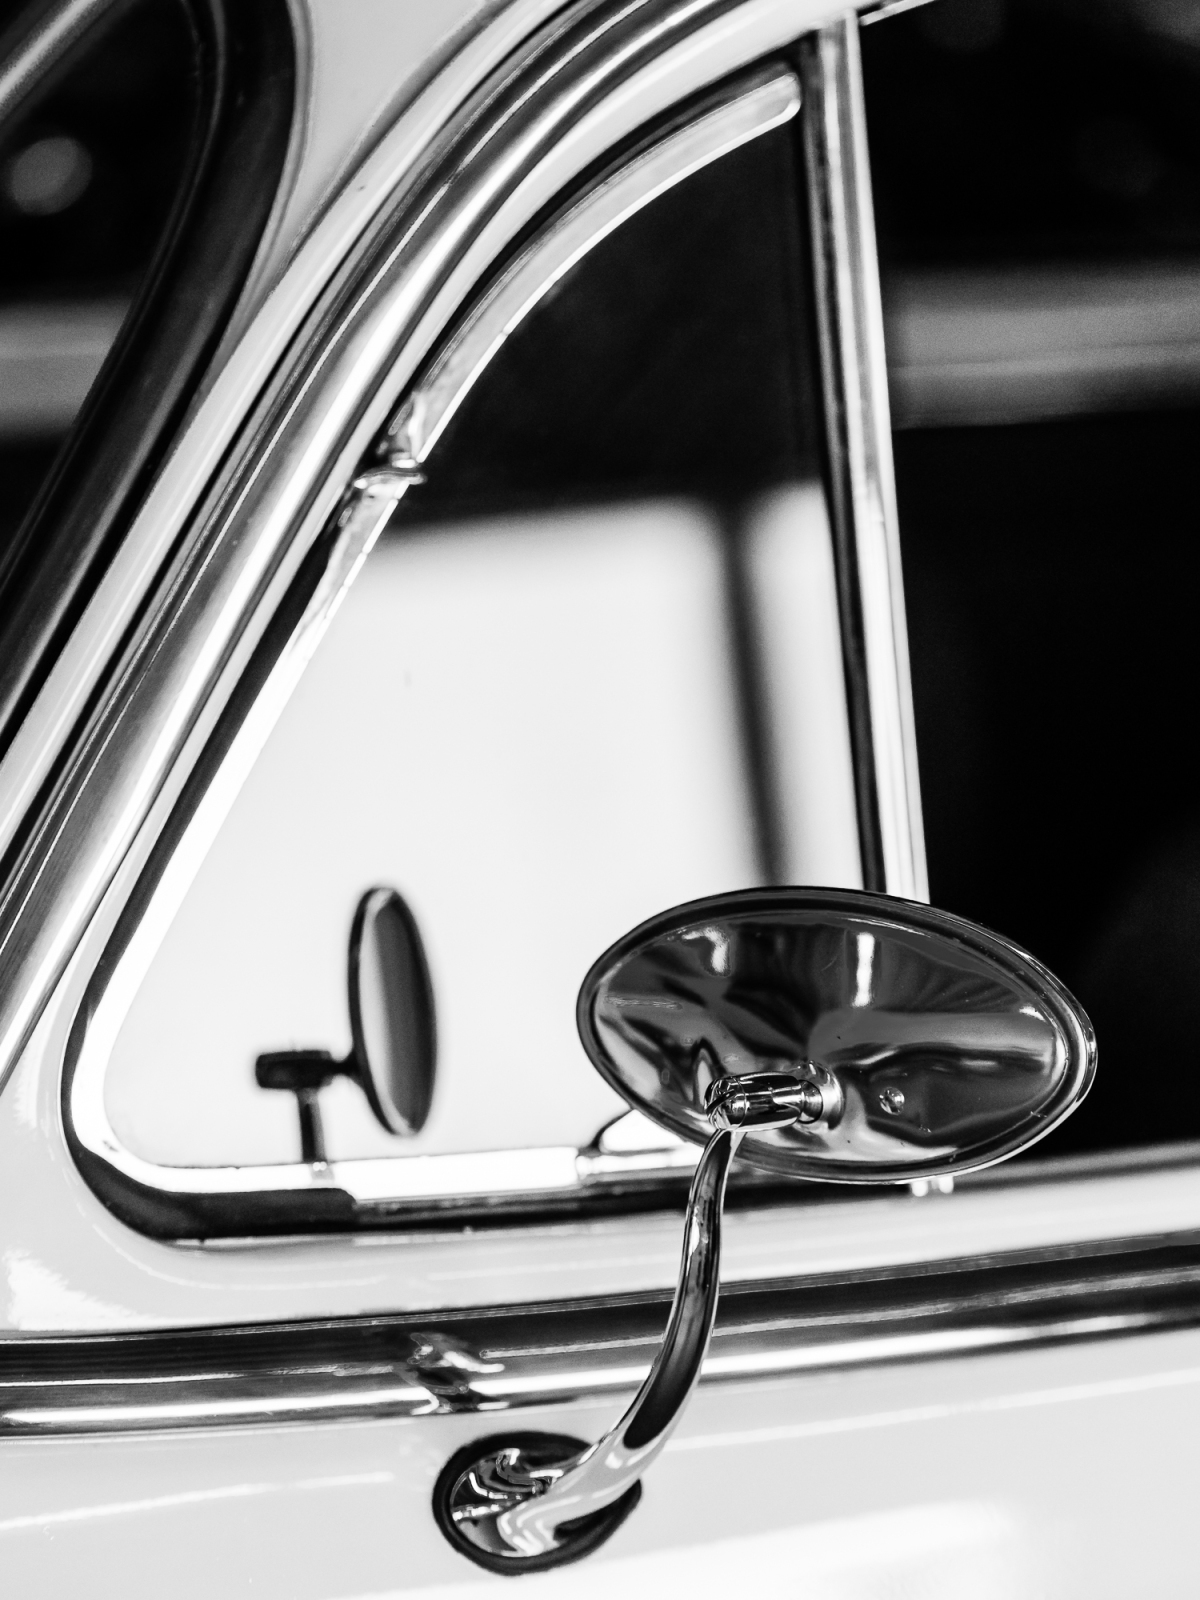 Photo theme: Quarter Windows & Side Mirrors